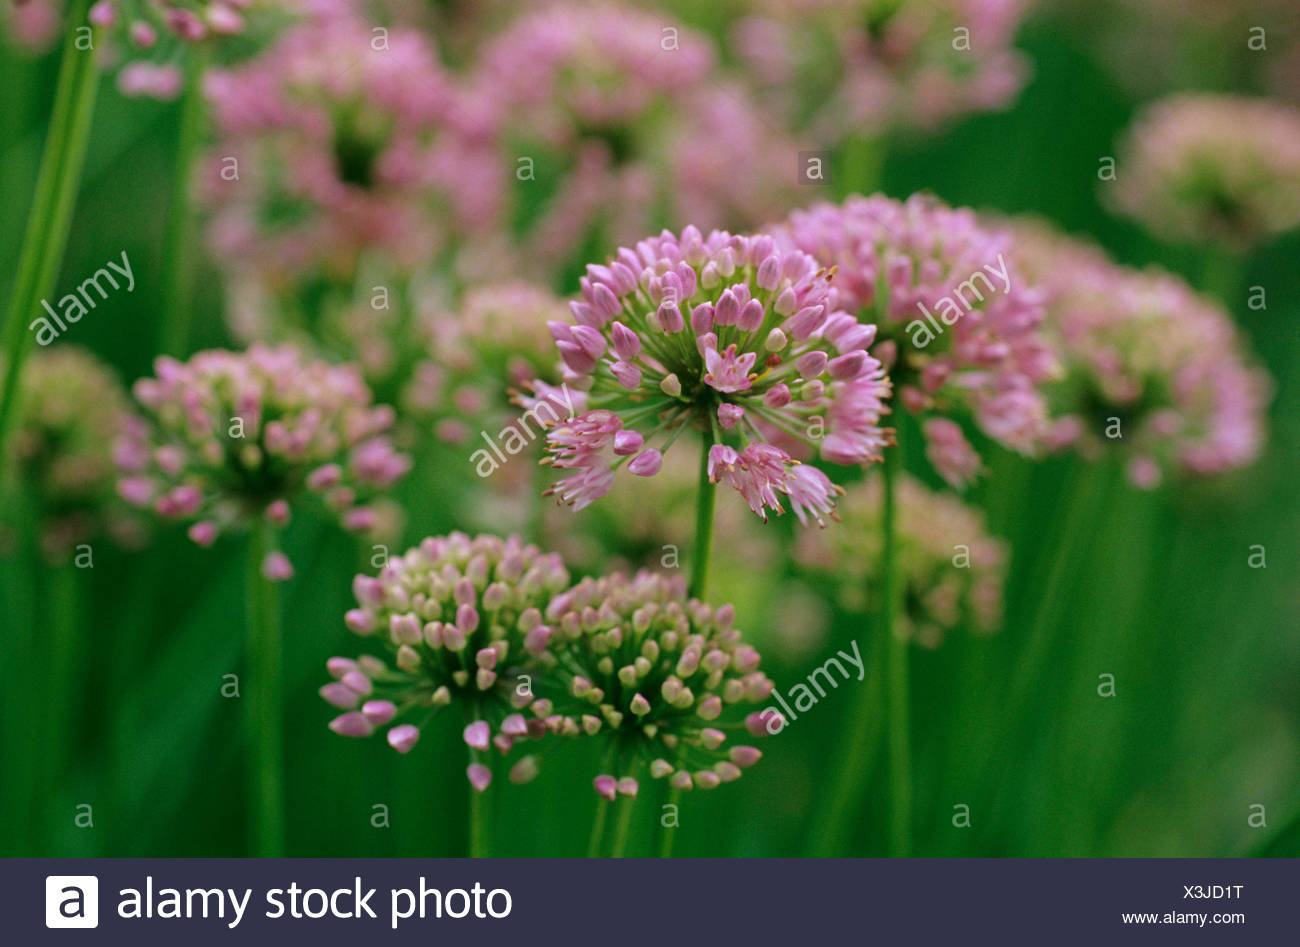 wild leek, elephant garlic (Allium ampeloprasum), blooming - Stock Image